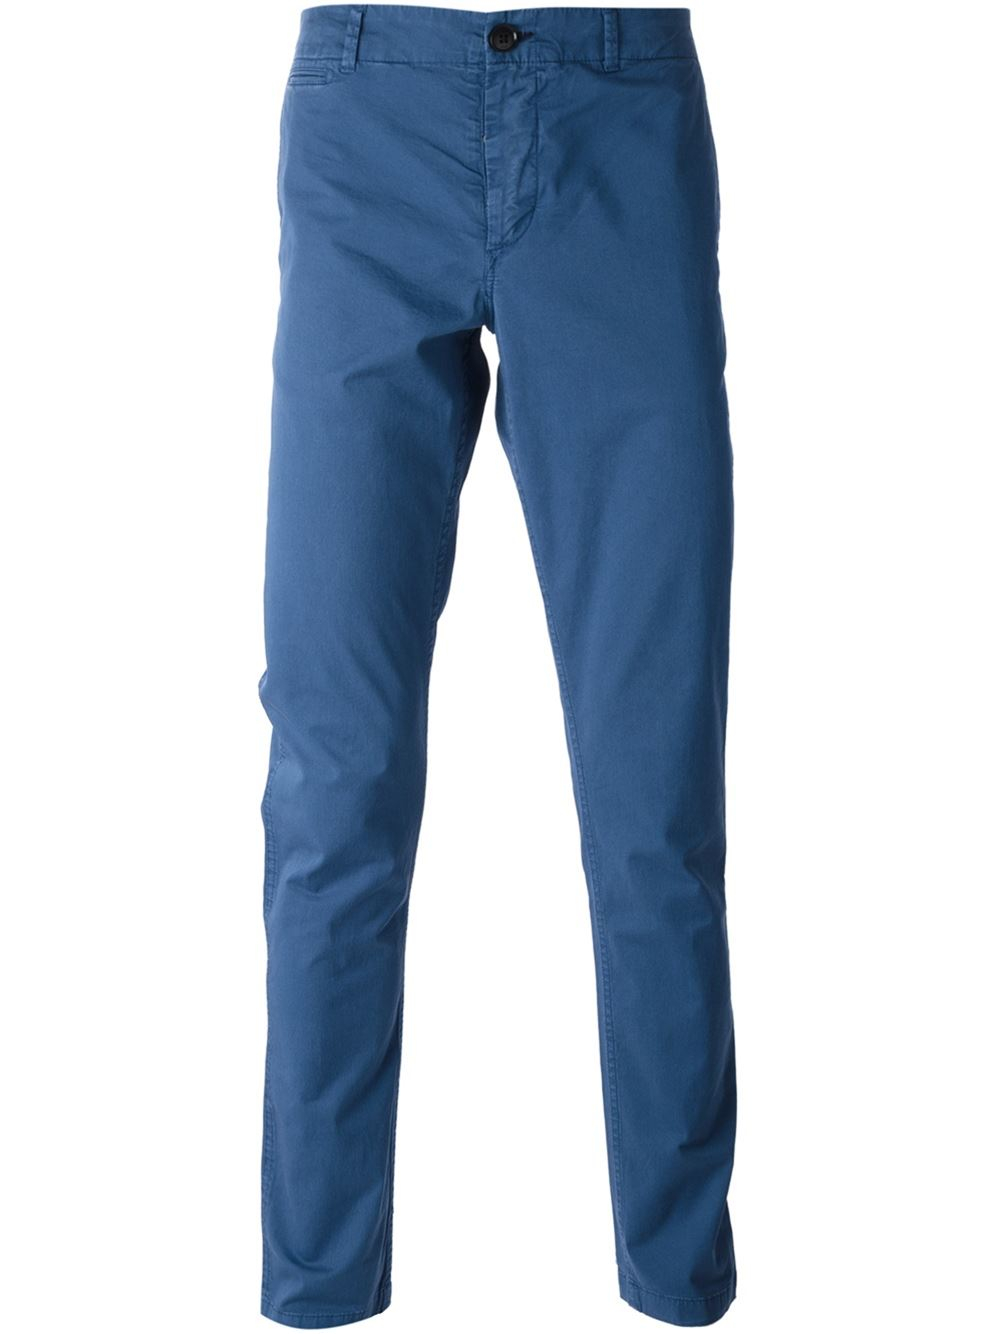 Navy Blue Casual Trousers for Men - products. New. Lara Karen Lara Karen Lara Karen Check belt dress. (%) + More colors. Colors Raymond Navy Blue Solid Slim Fit Corduroy Trouser. (%) Sizes 38 34 Add To Wishlist. Quick view. U.S. Polo Assn. Navy Blue Textured Regular Fit Chinos. (%) Sizes 34 32